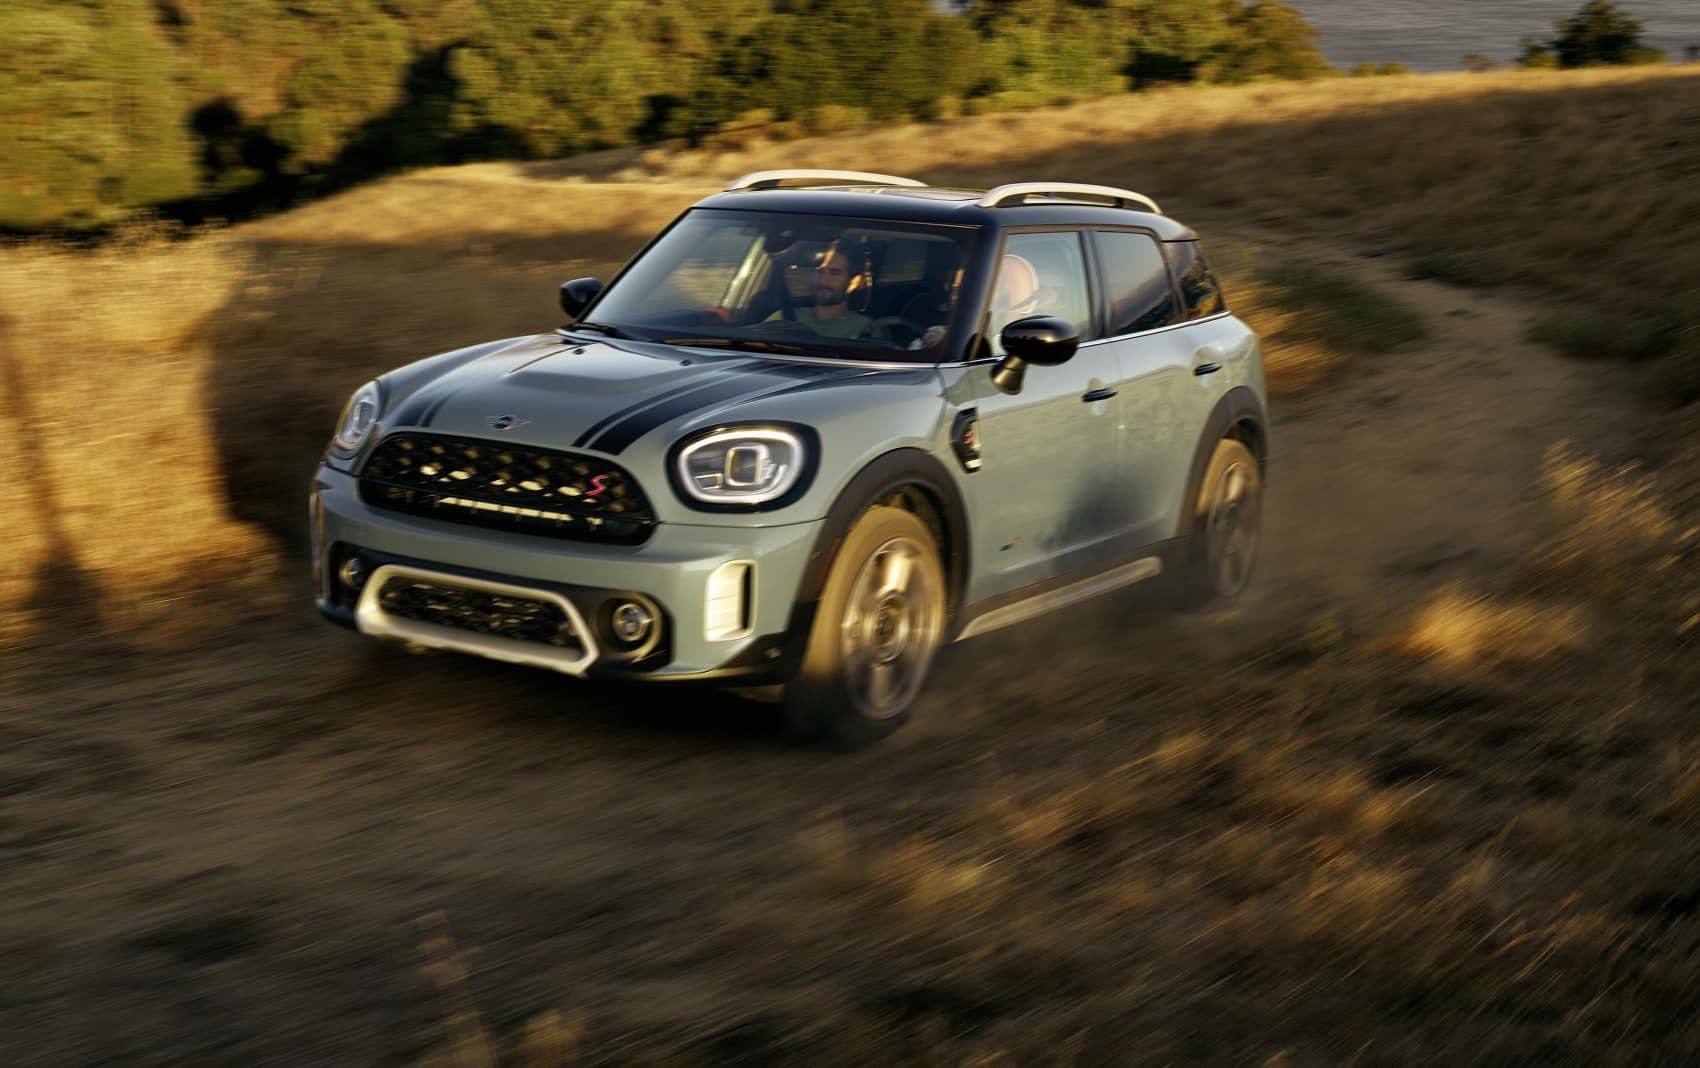 2021 MINI Cooper S Countryman Engine Specs